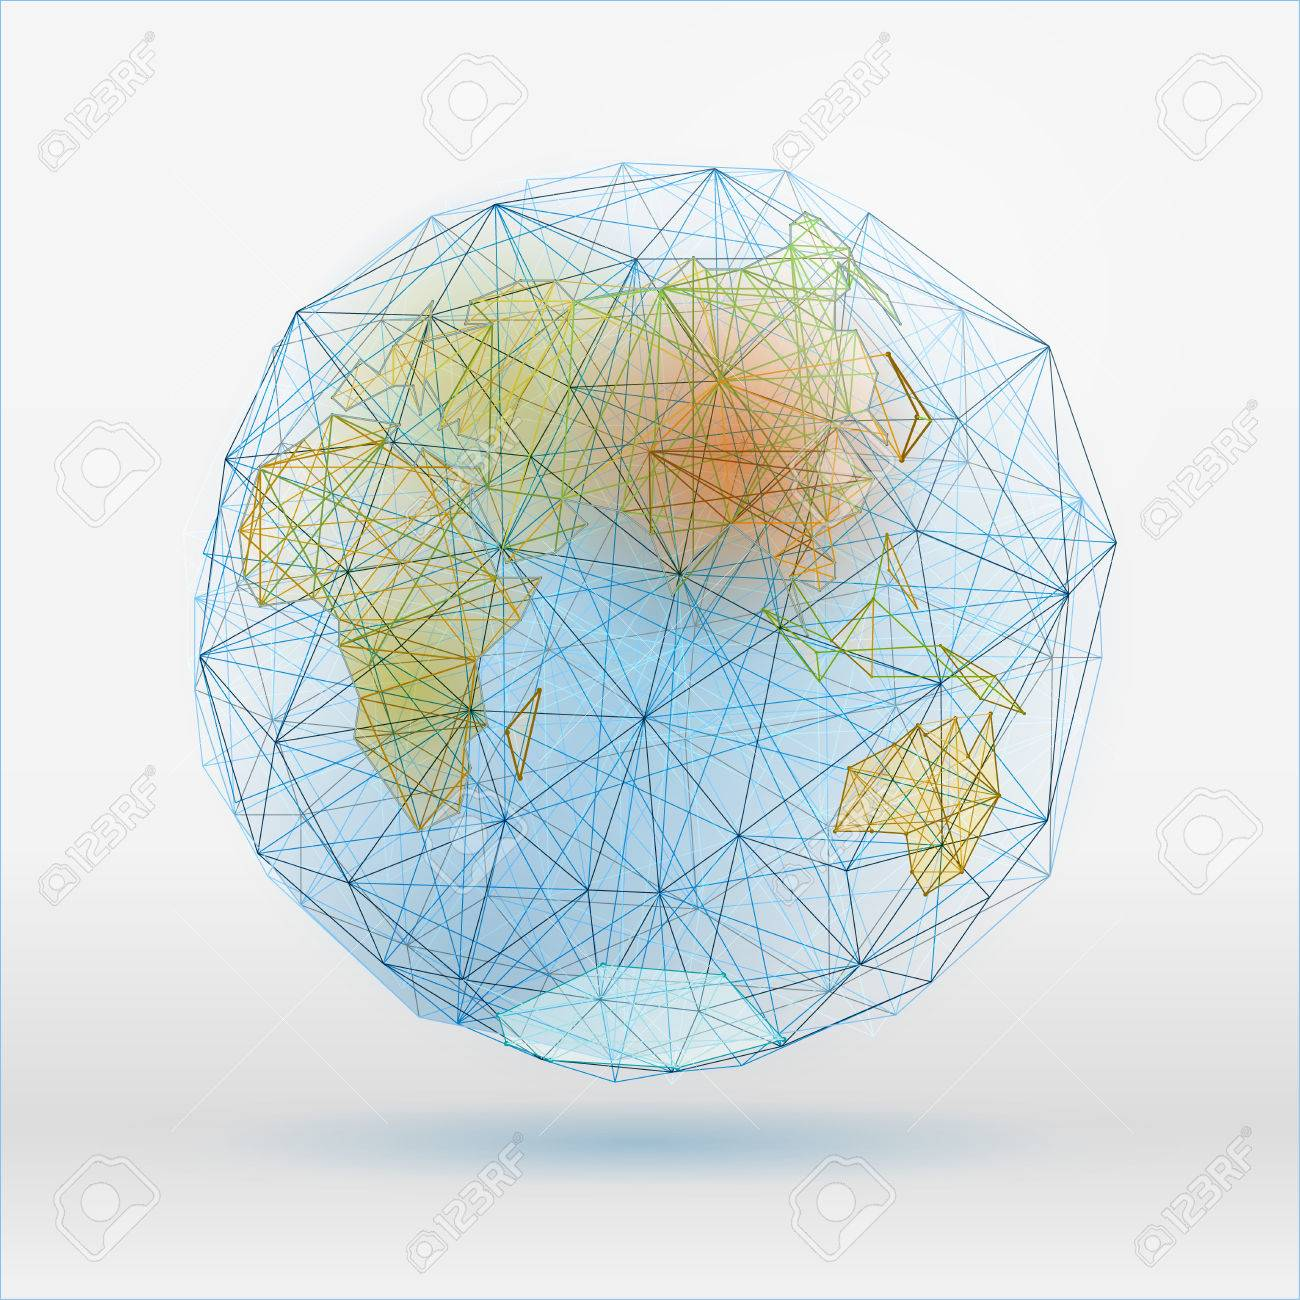 Abstract polygonal world map with dots connecting lines network abstract polygonal world map with dots connecting lines network connections digital globe concept gumiabroncs Gallery